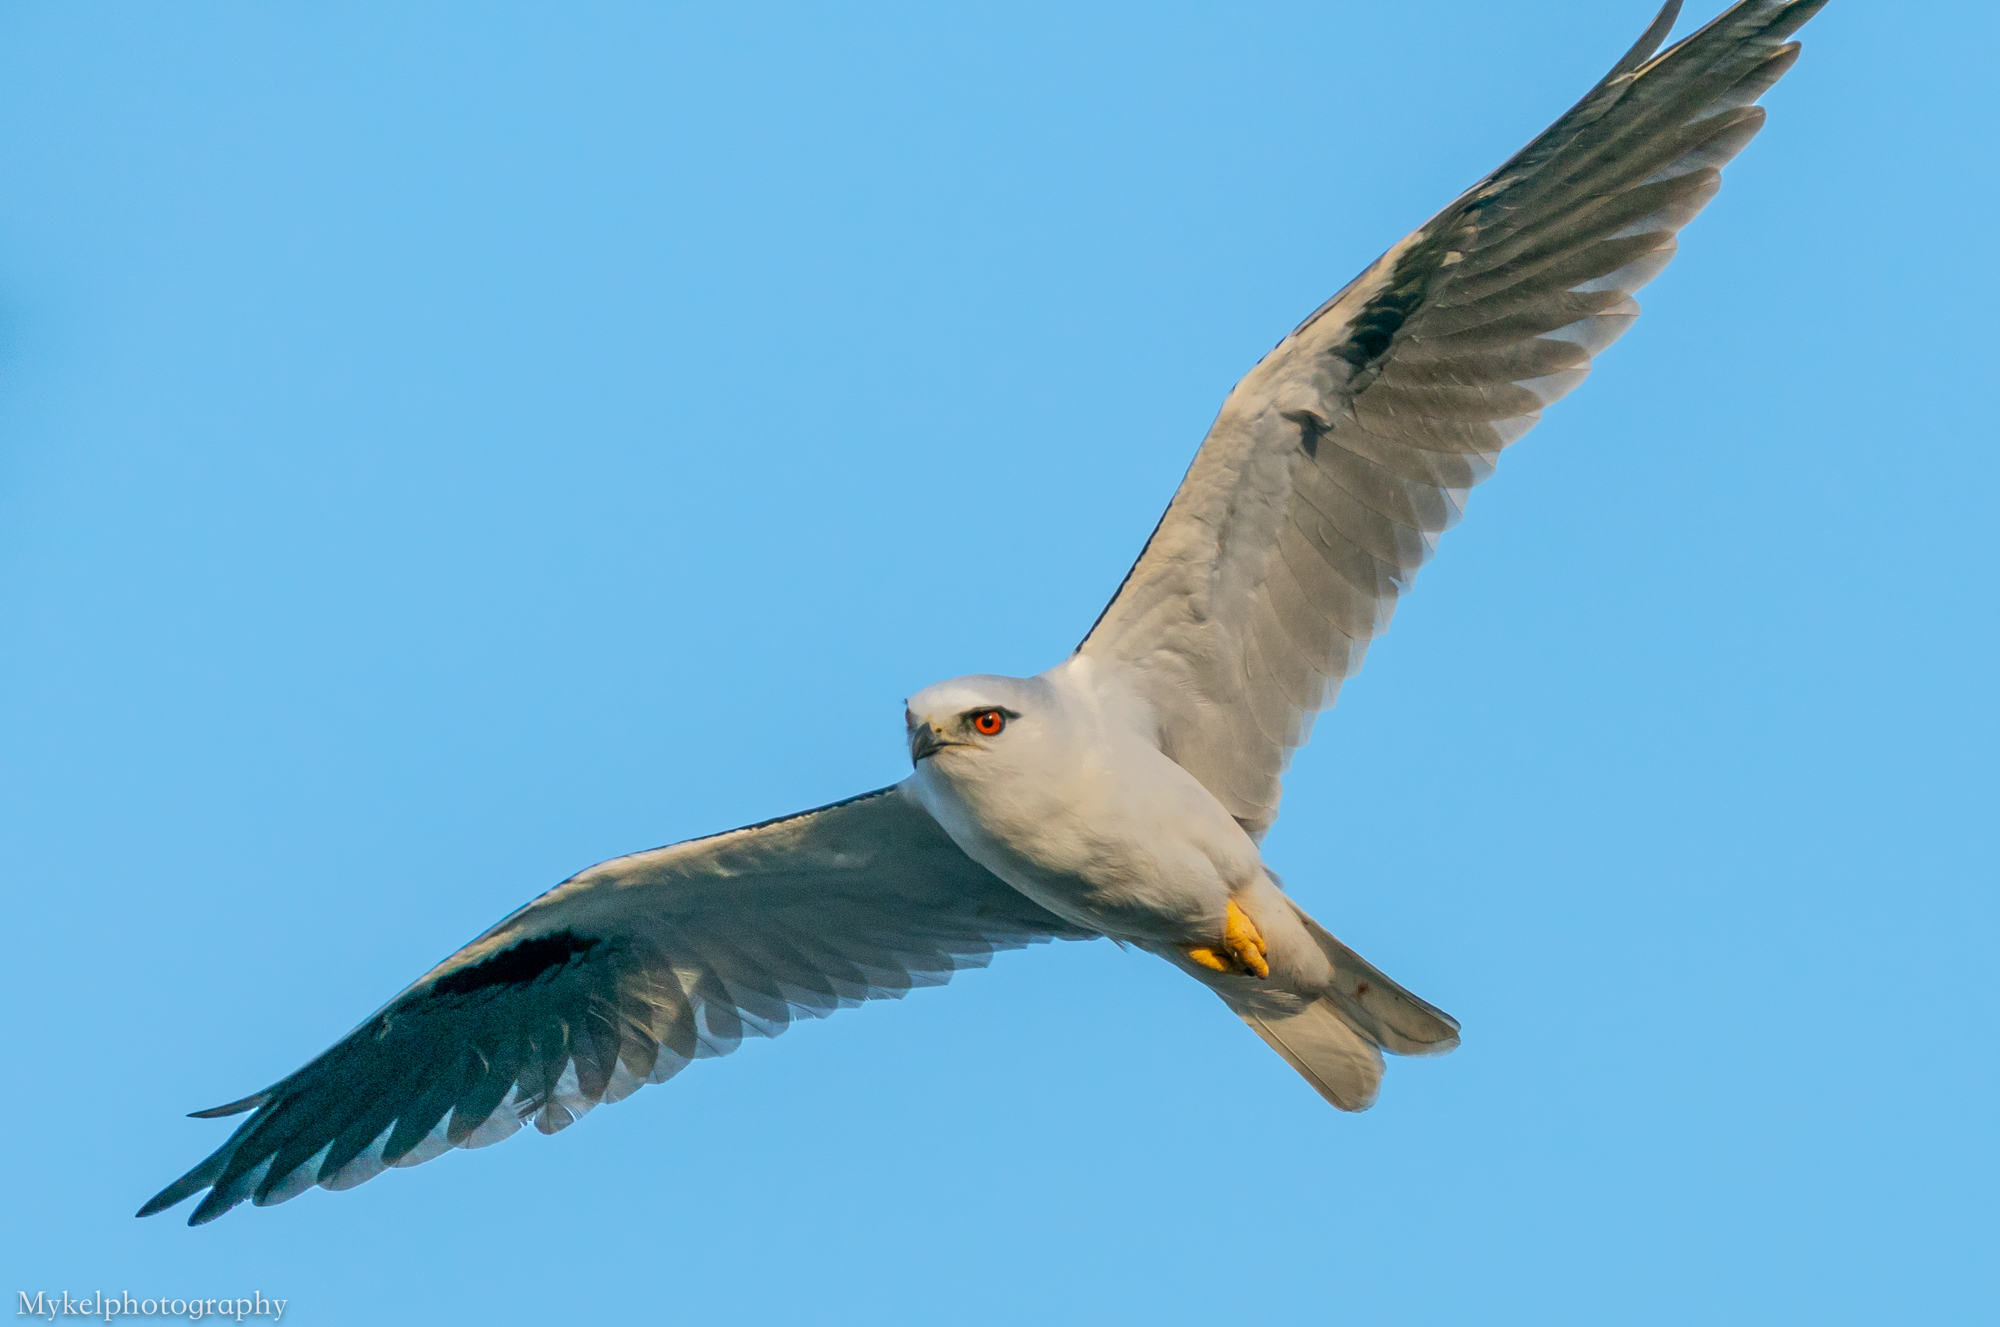 Black-shouldered Kite, Elanus axillaris Accipitridae